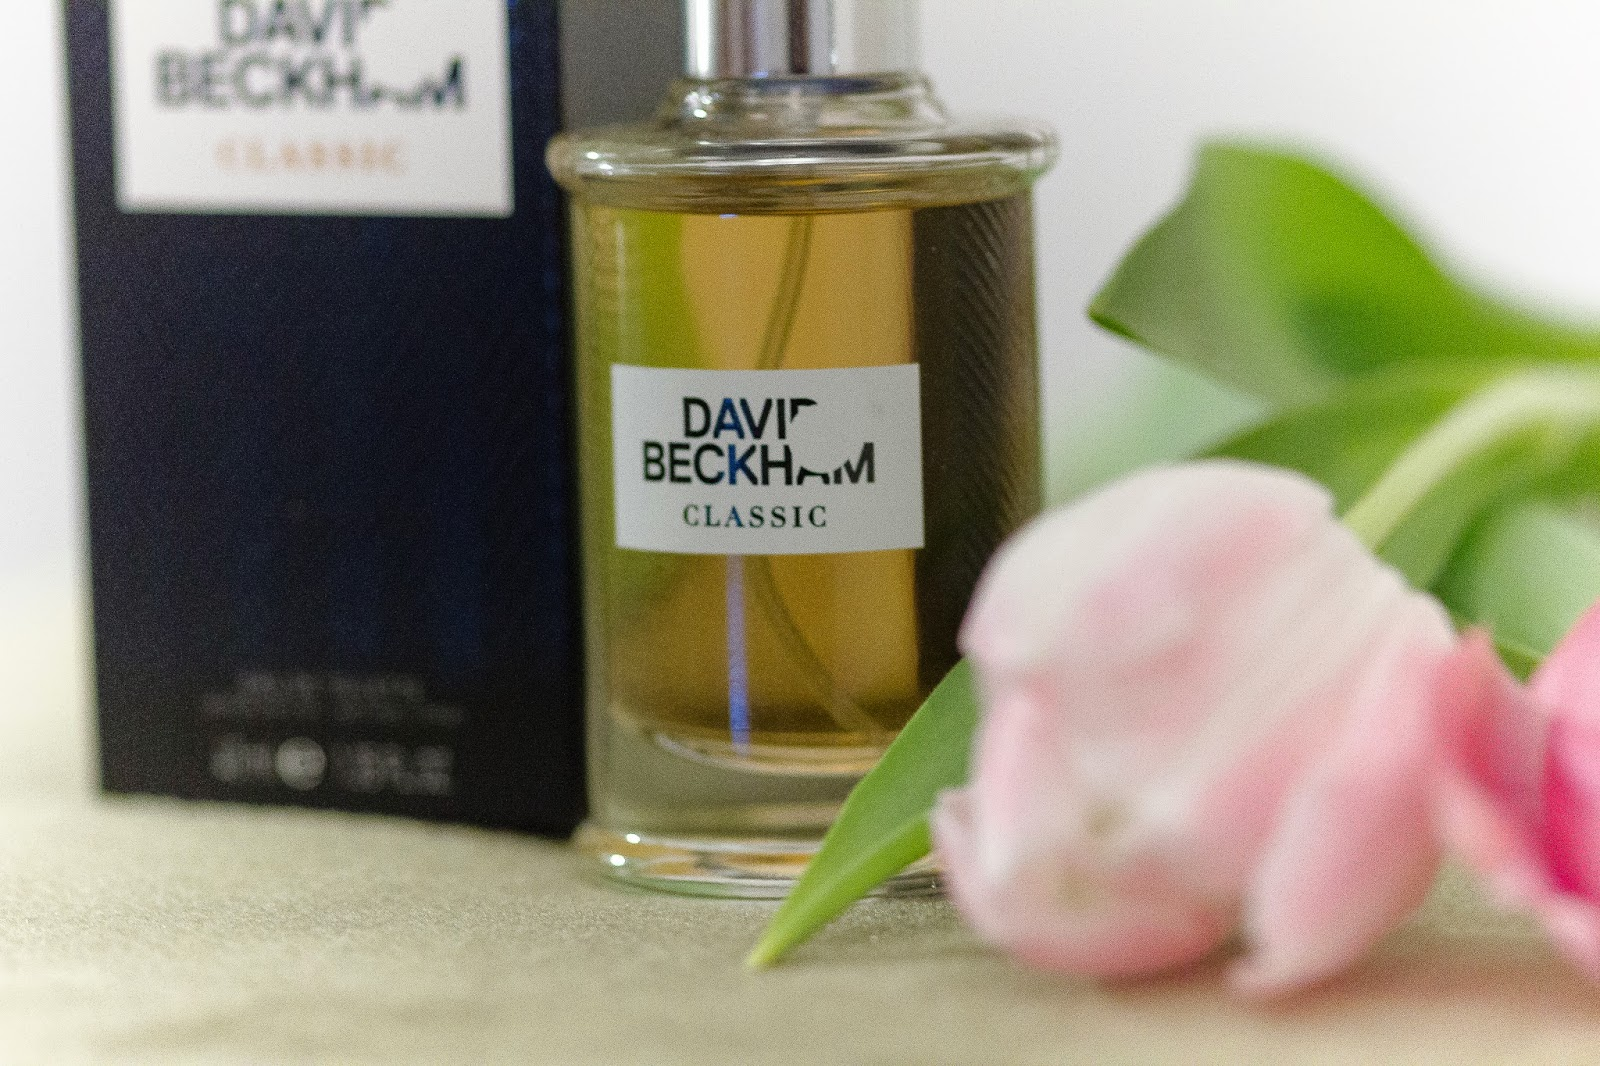 PERFUME: DAVID BECKHAM CLASSIC PRIZMAHFASHION